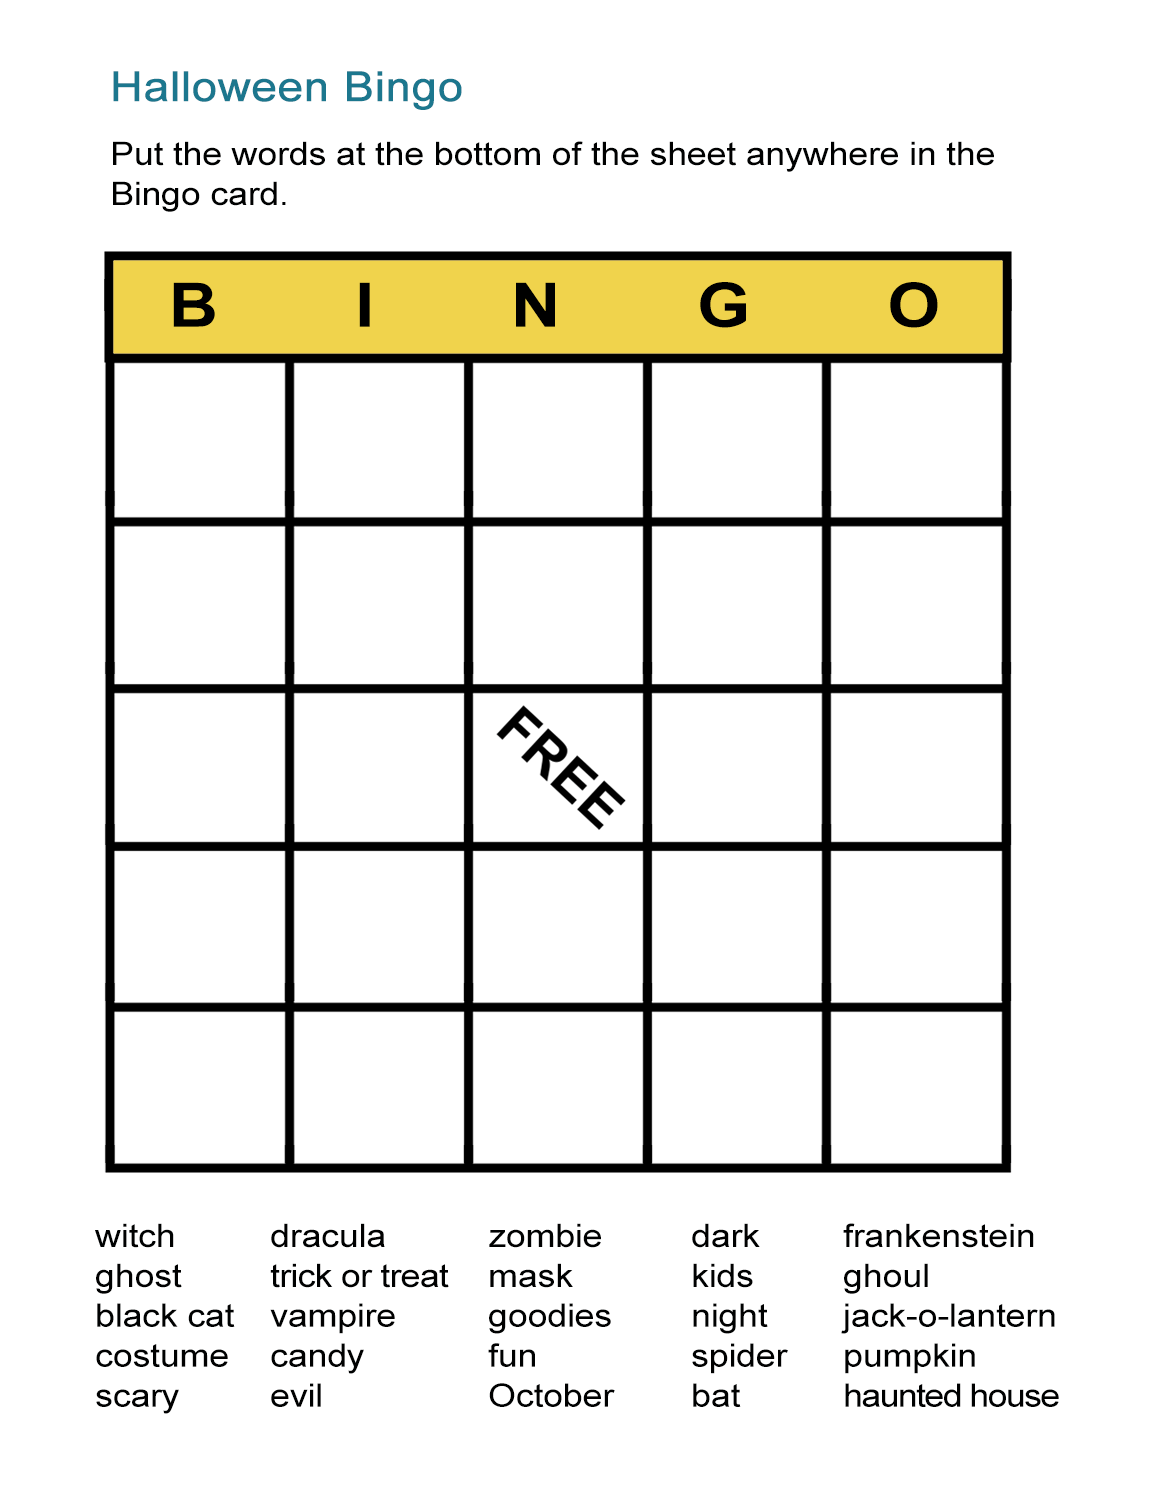 photograph regarding Printable Halloween Bingo Card named Halloween Bingo Playing cards: Printable Bingo Video games for Cl - All ESL